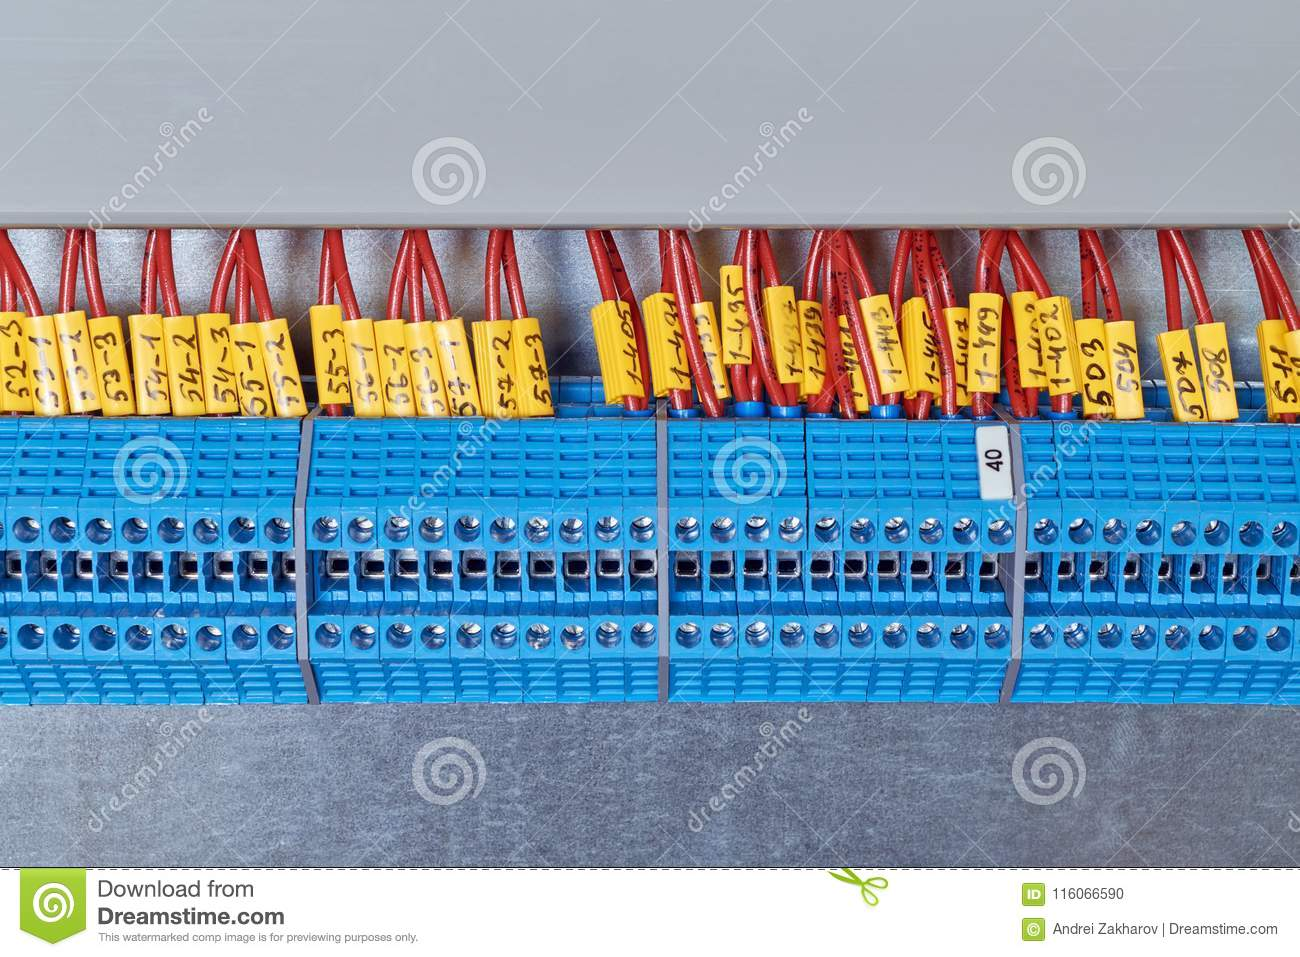 A Number Of Electrical Transmission Terminals With Electrical Wires ...